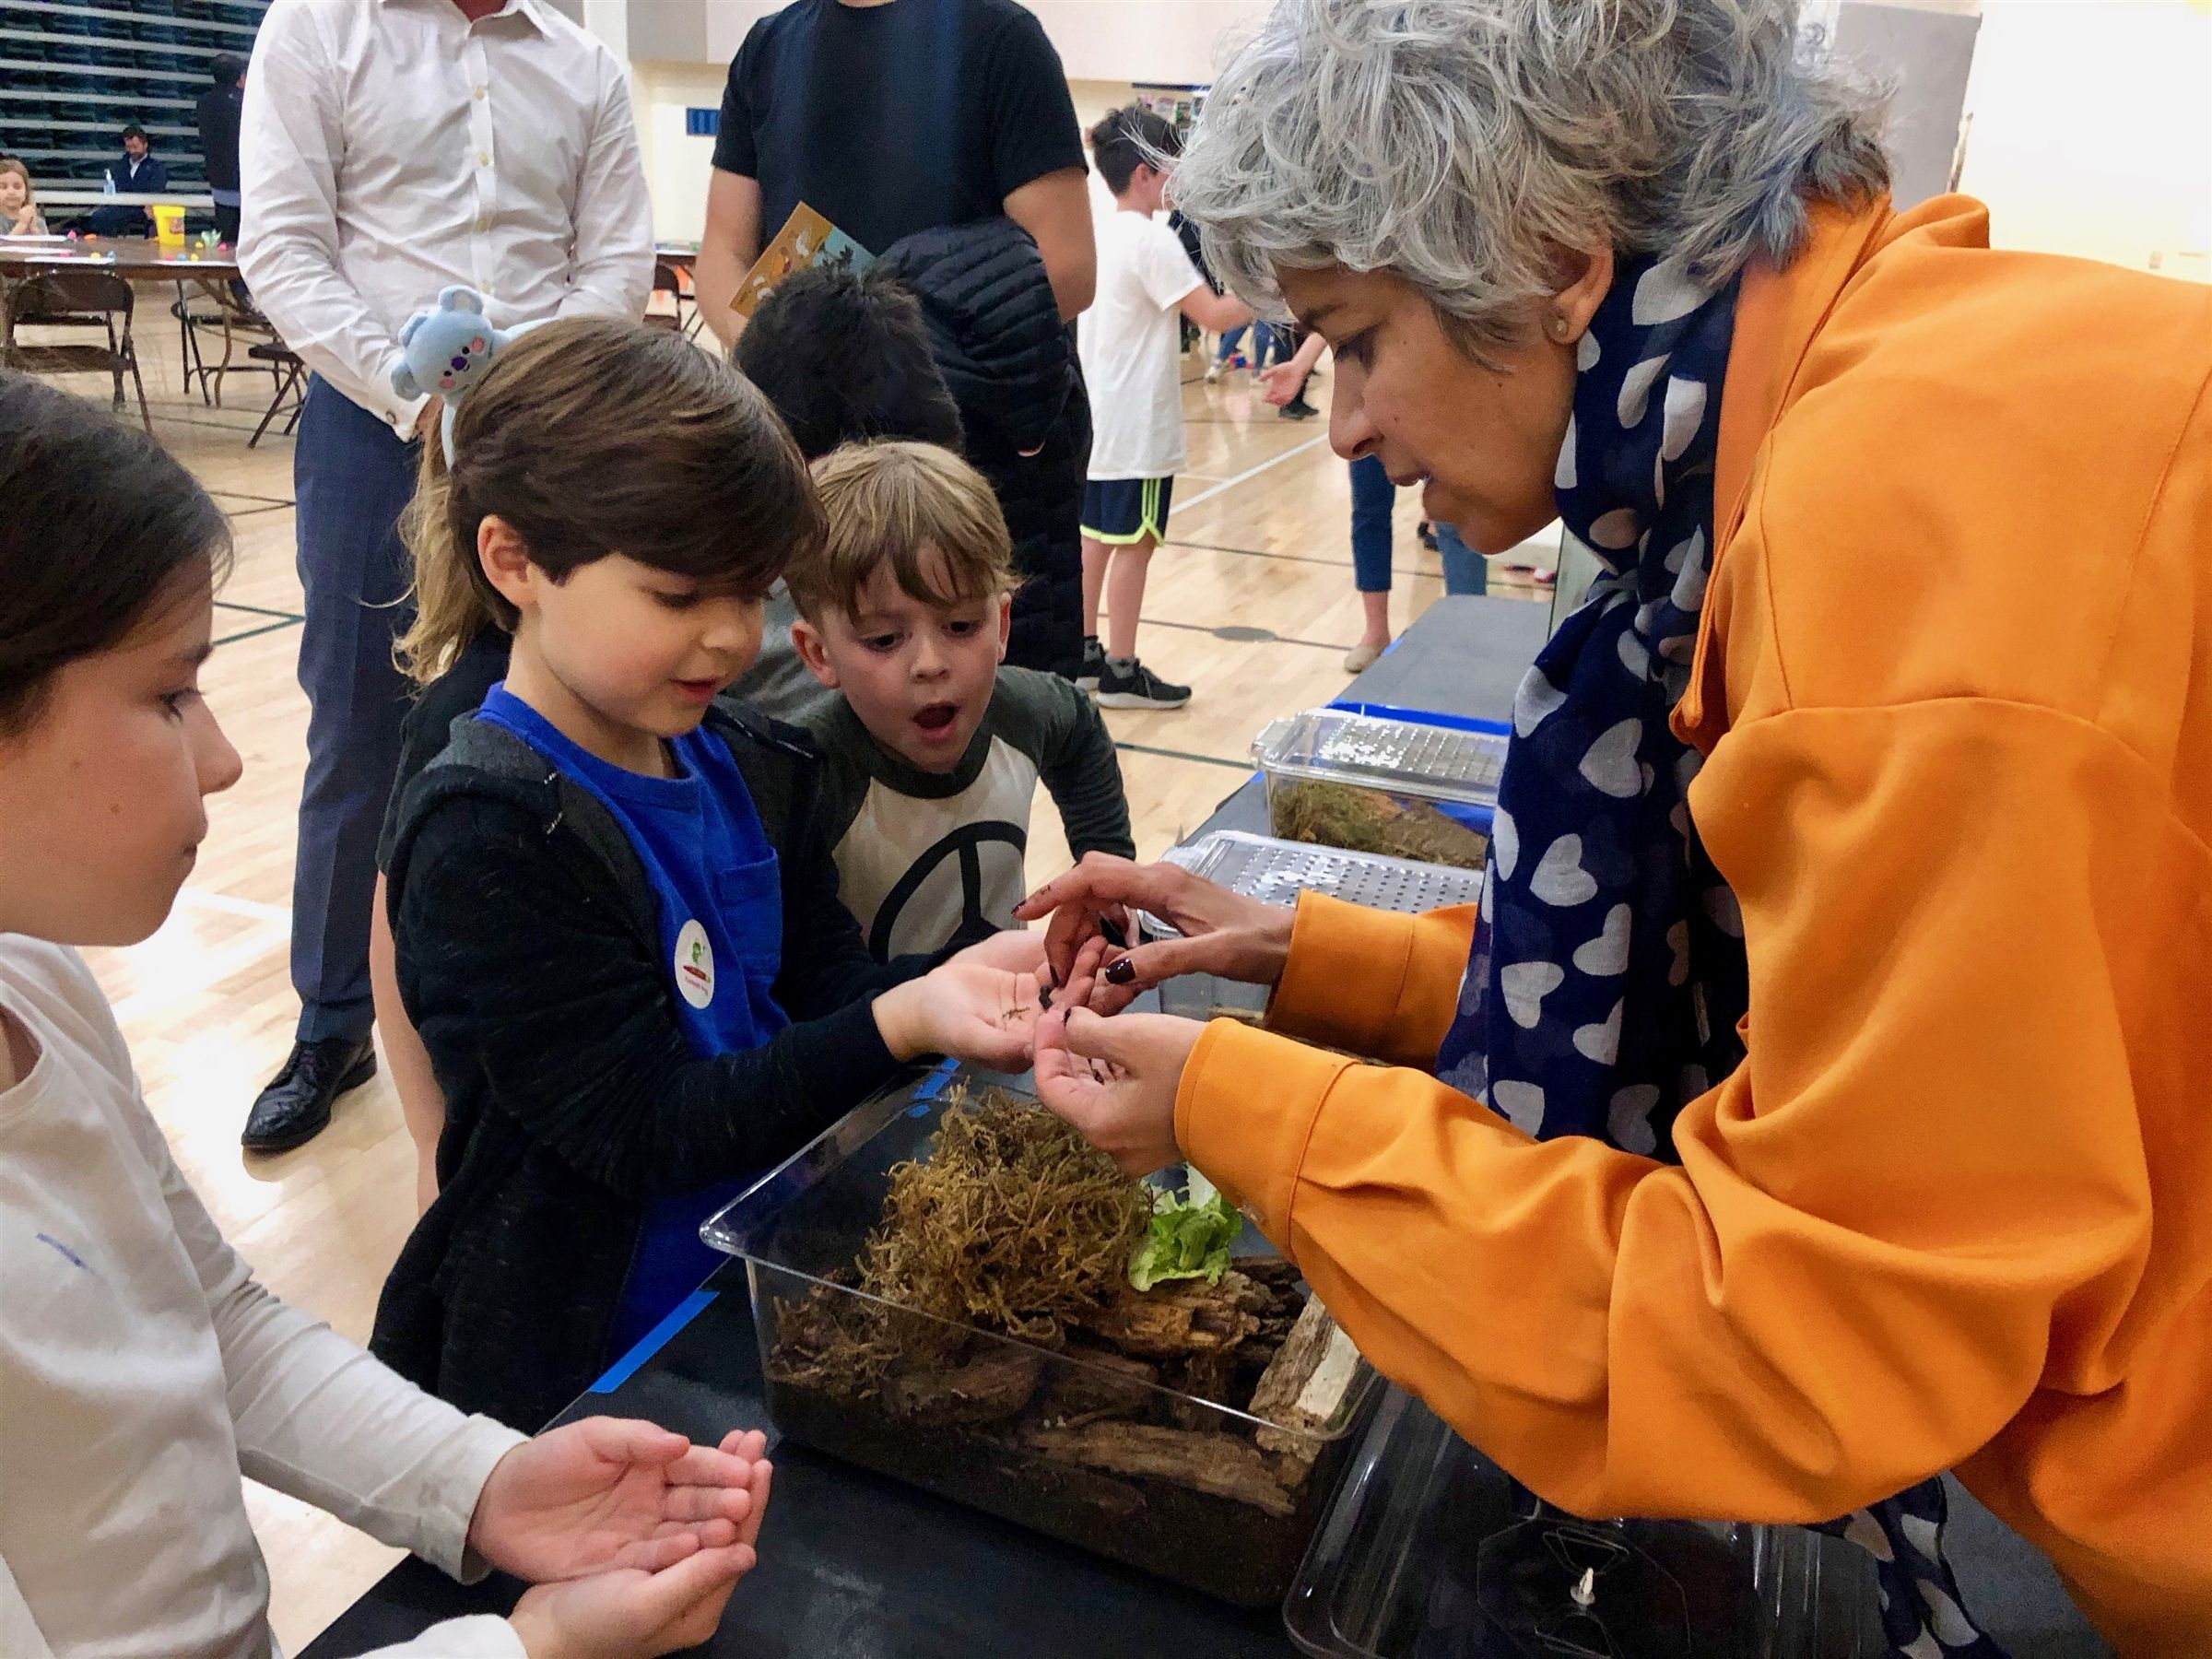 At the 3rd Annual STEAM Festival, families enjoyed over 30 interactive activity stations.